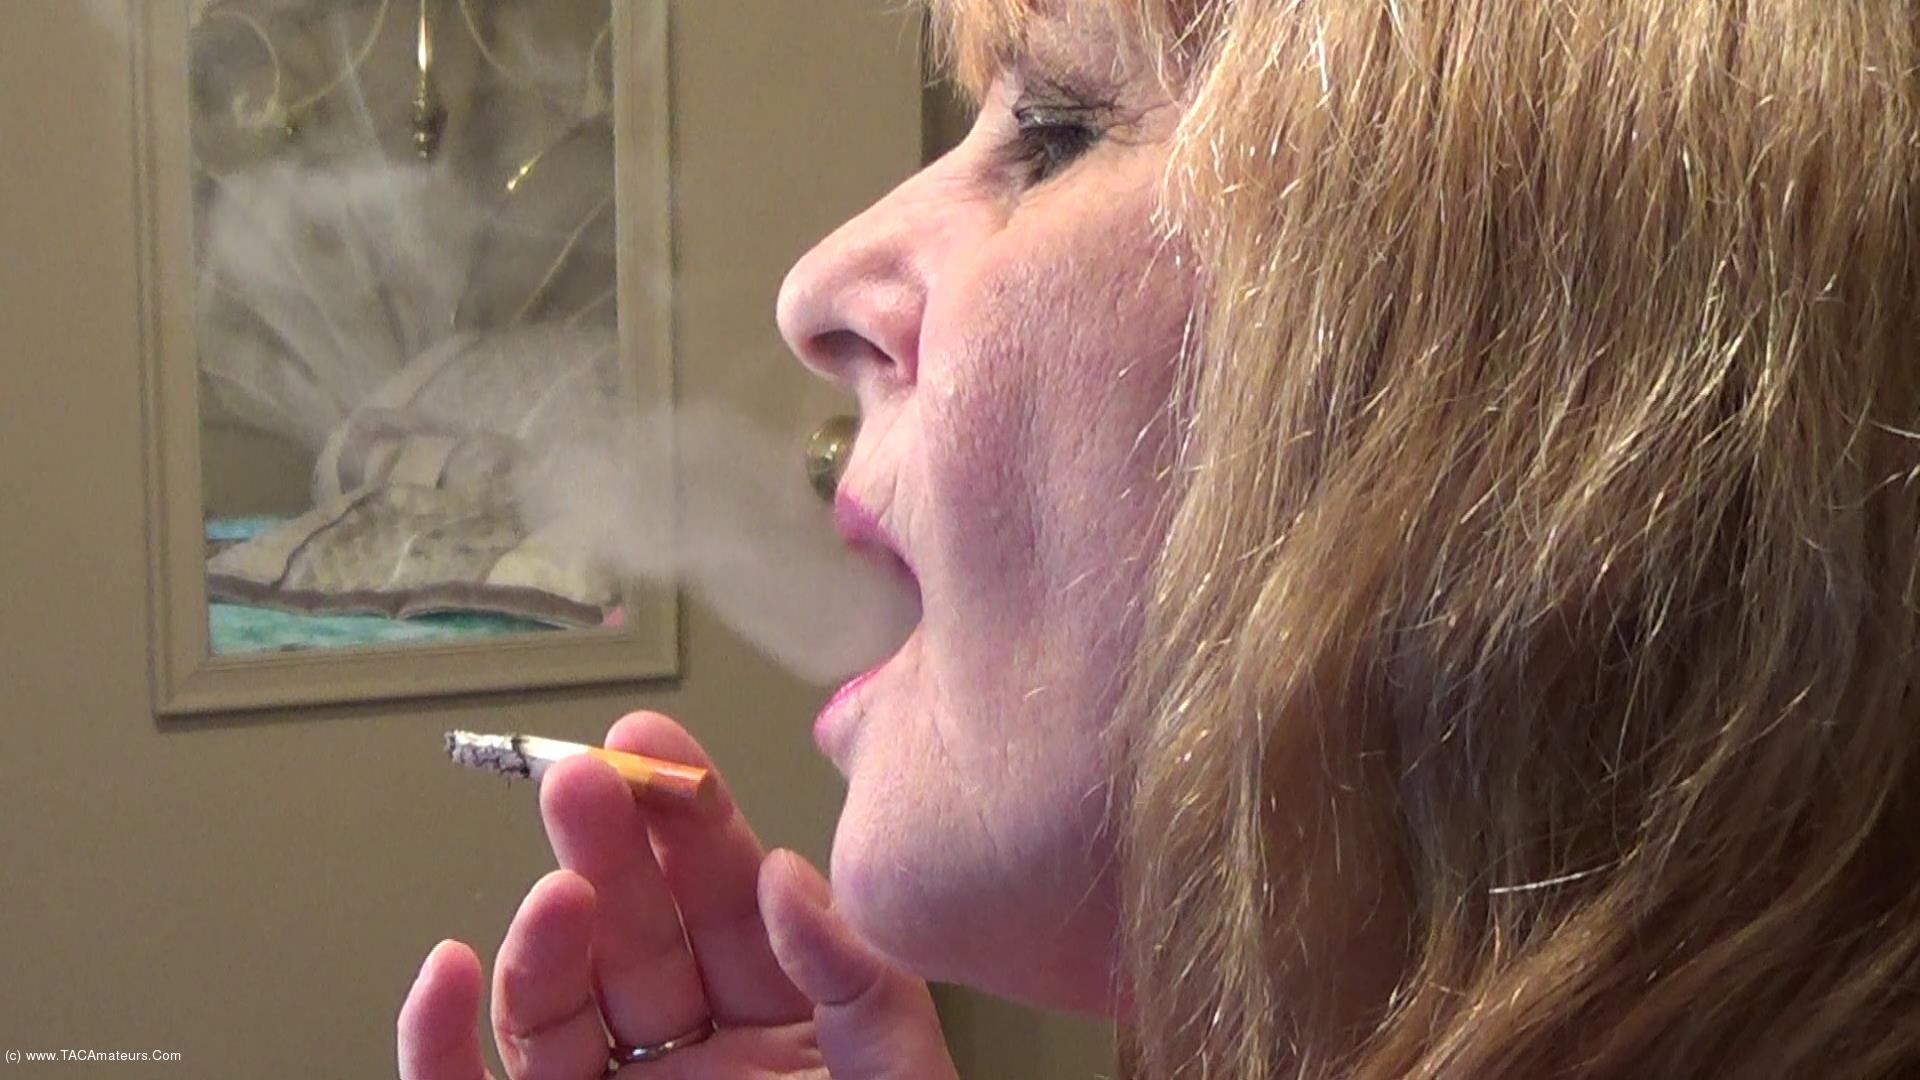 CougarBabeJolee - Side View Smoking Closeup scene 2